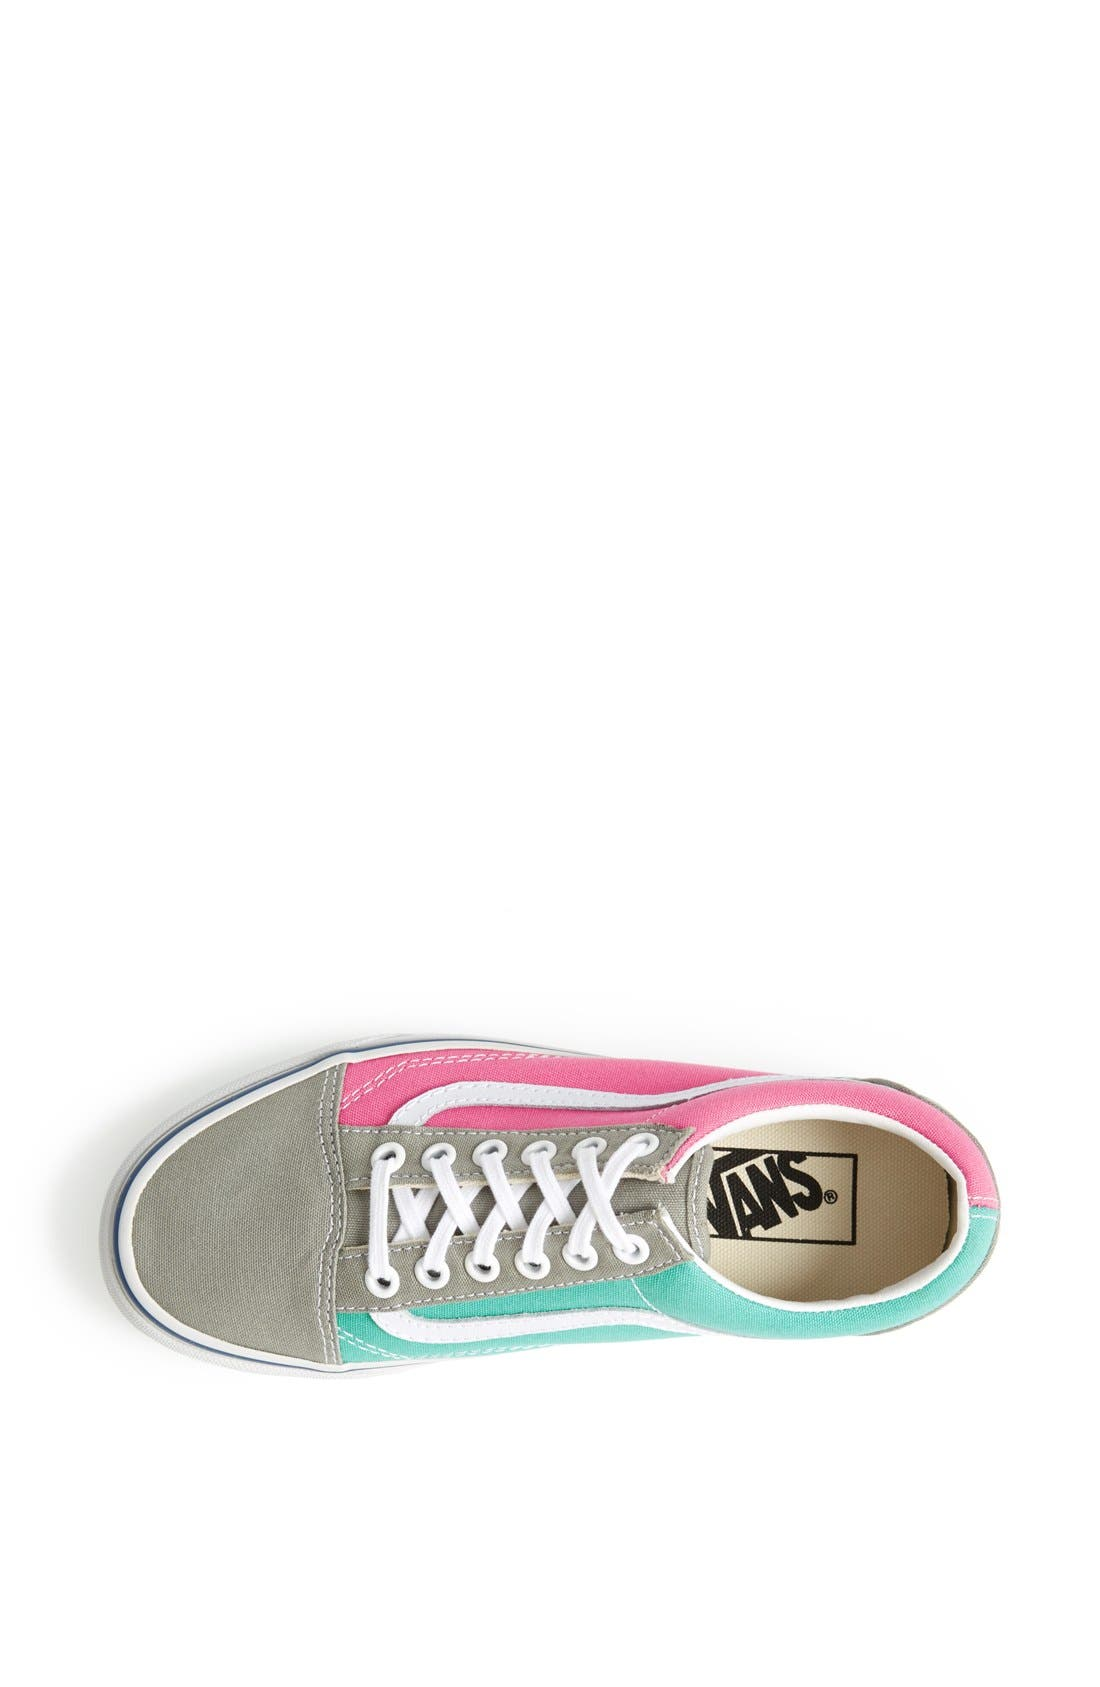 Alternate Image 3  - Vans 'Old Skool' Sneaker (Women)